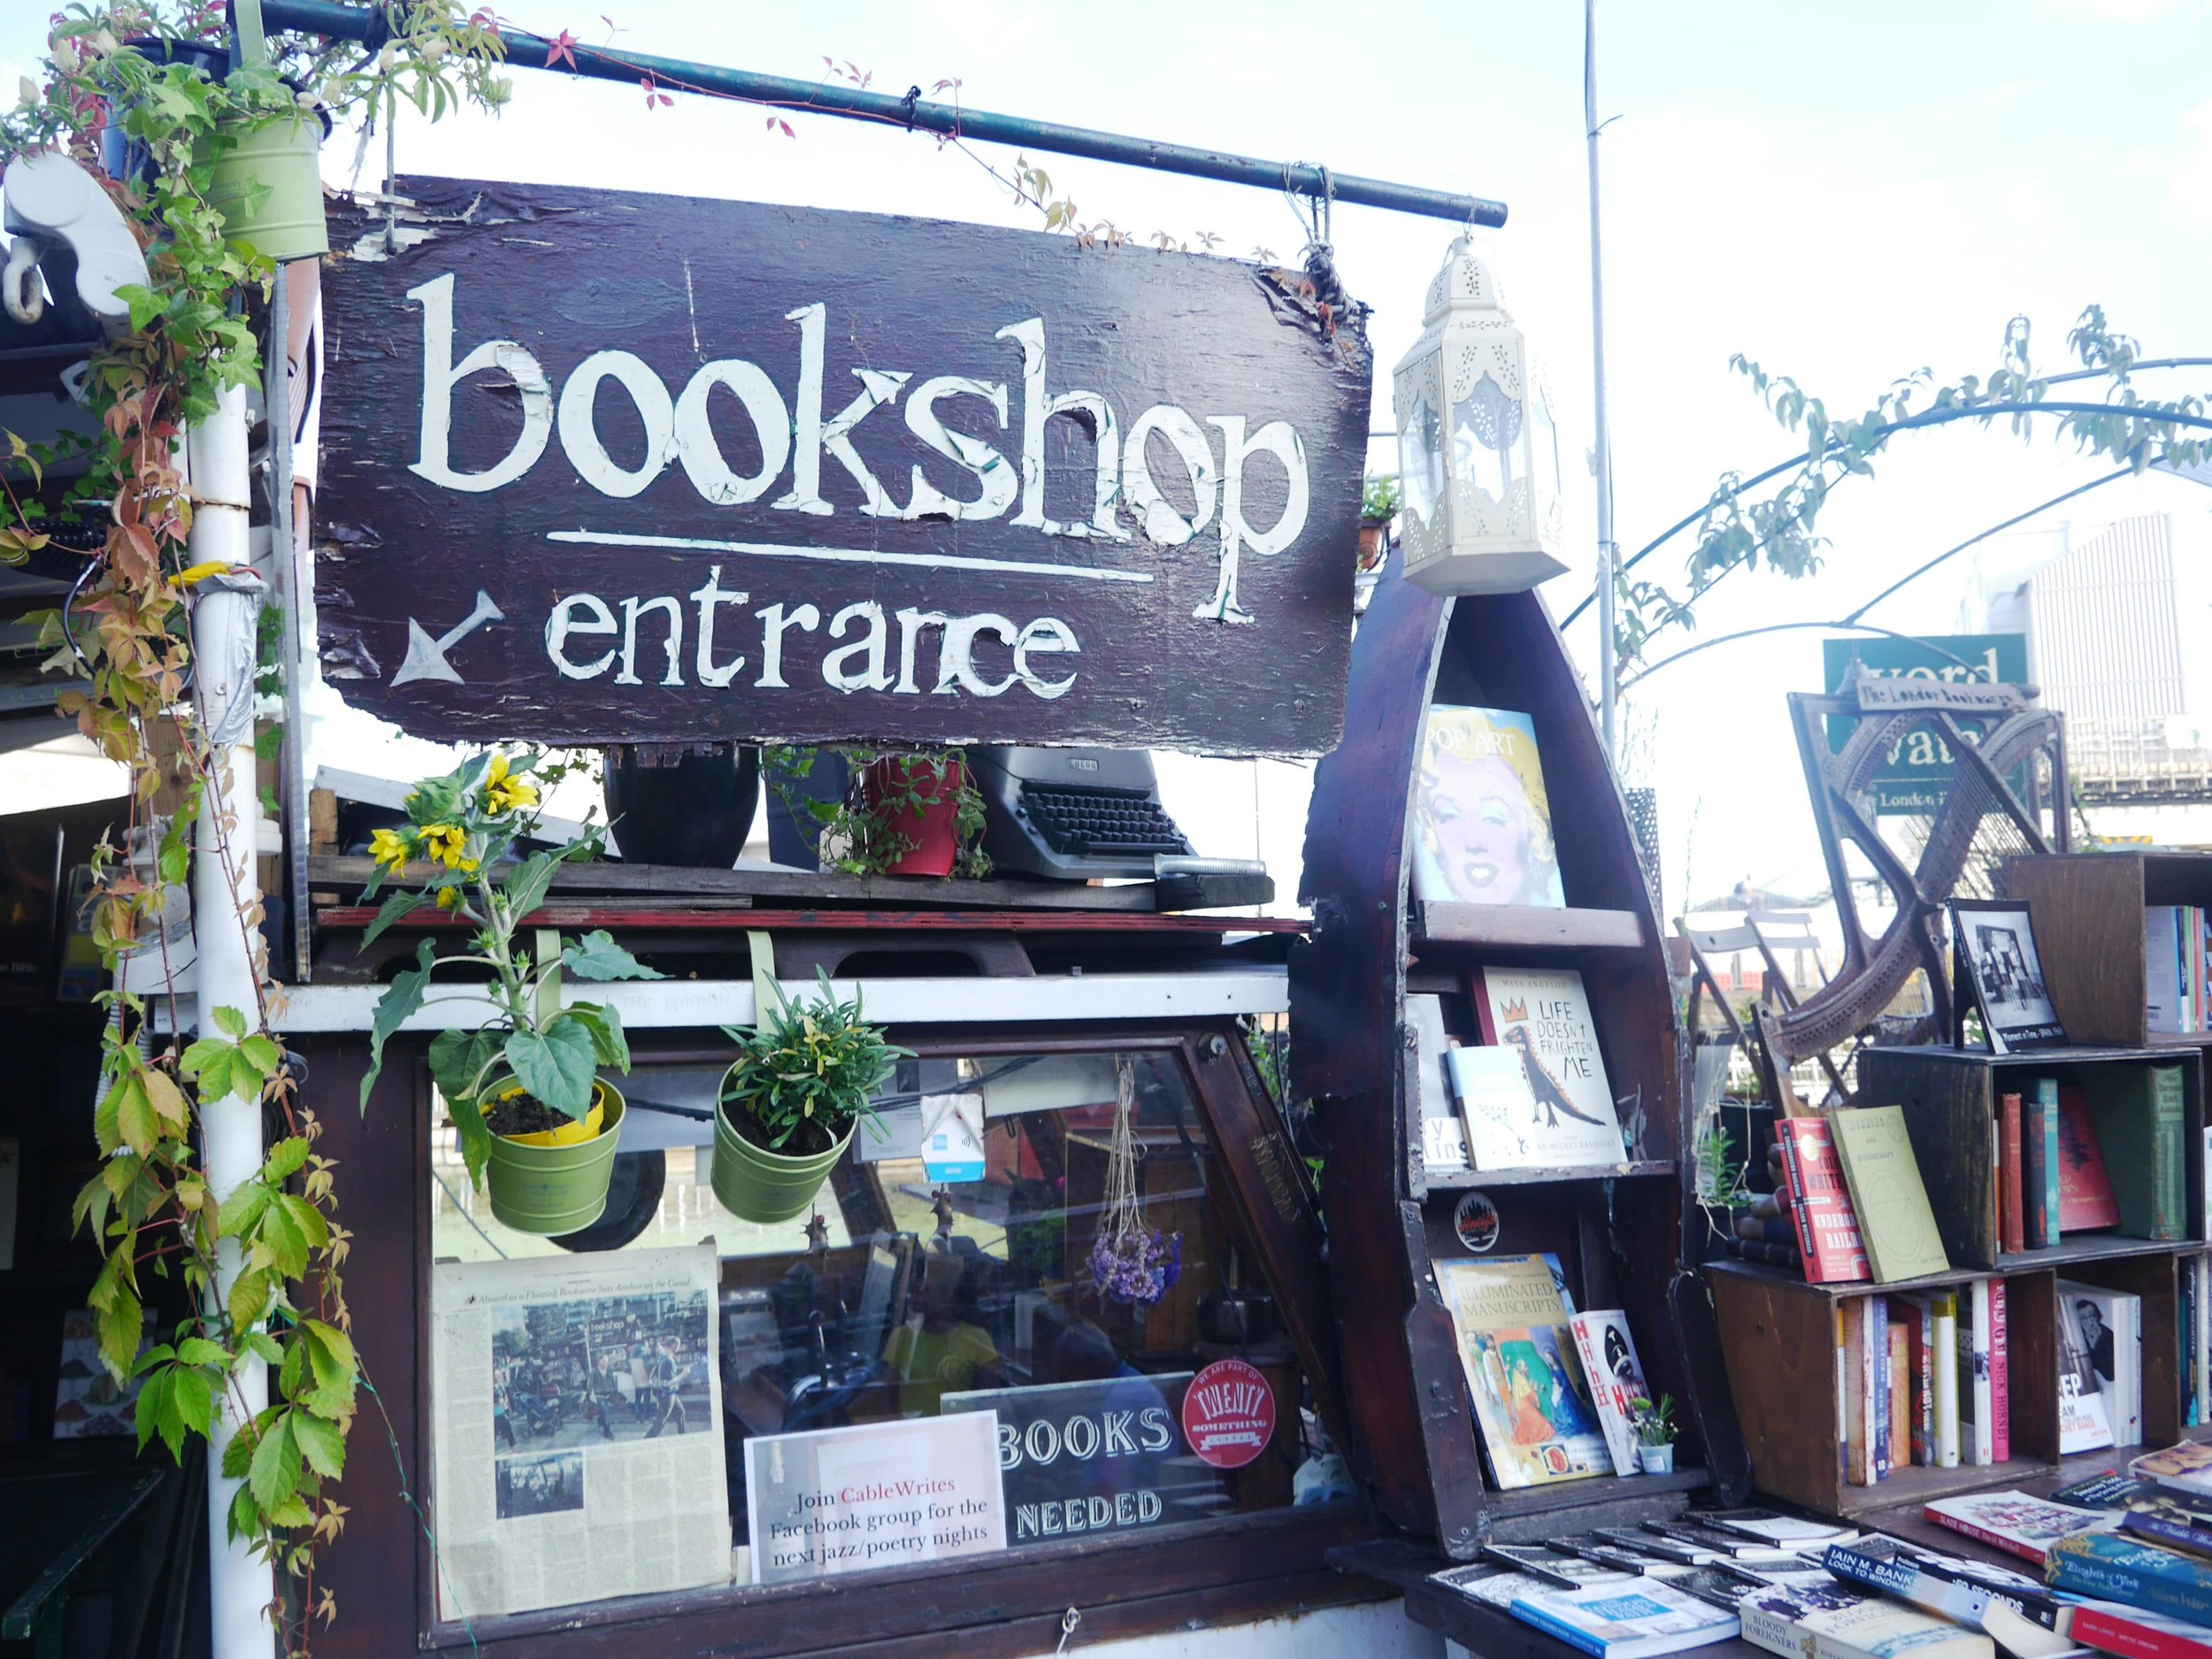 A heavenly bookshop on a boat near King's Cross.